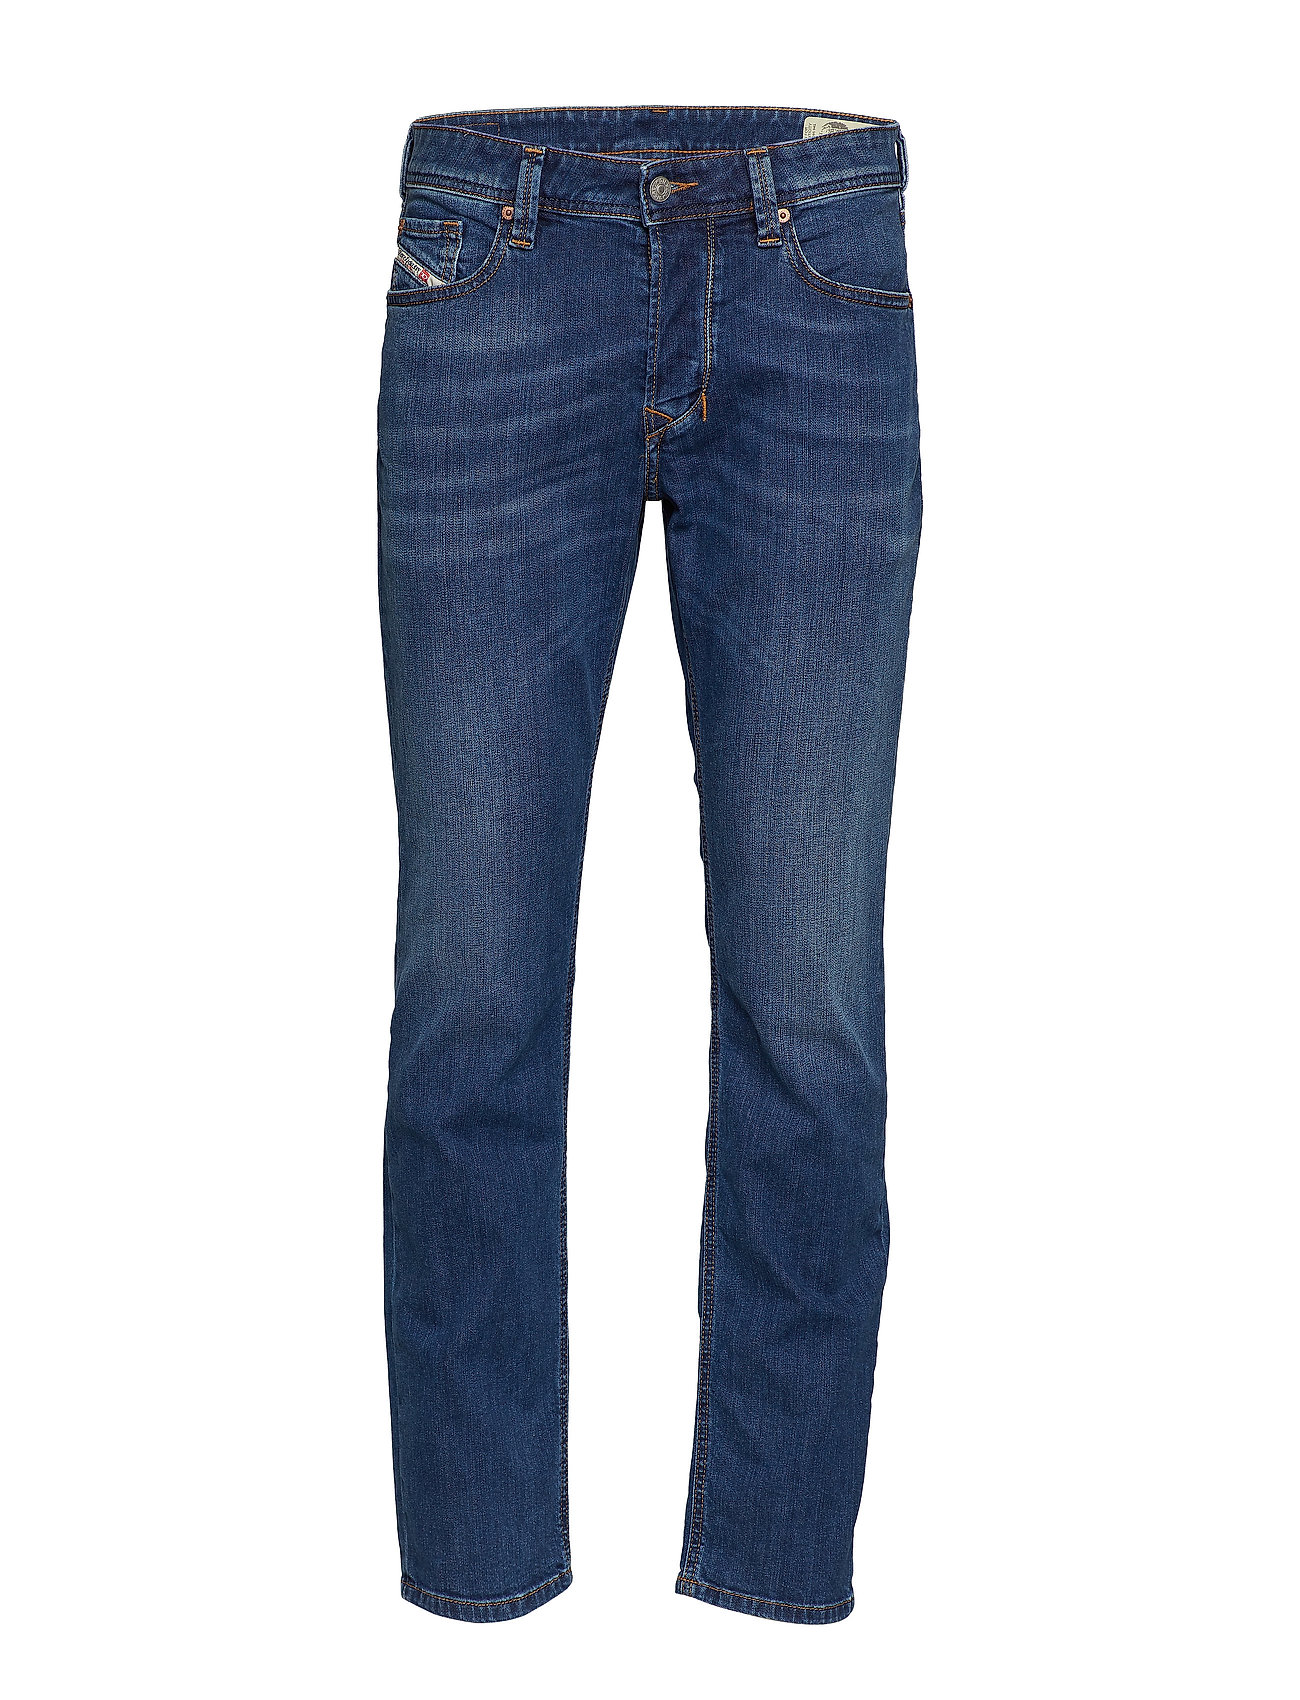 Diesel Men LARKEE-BEEX - DENIM